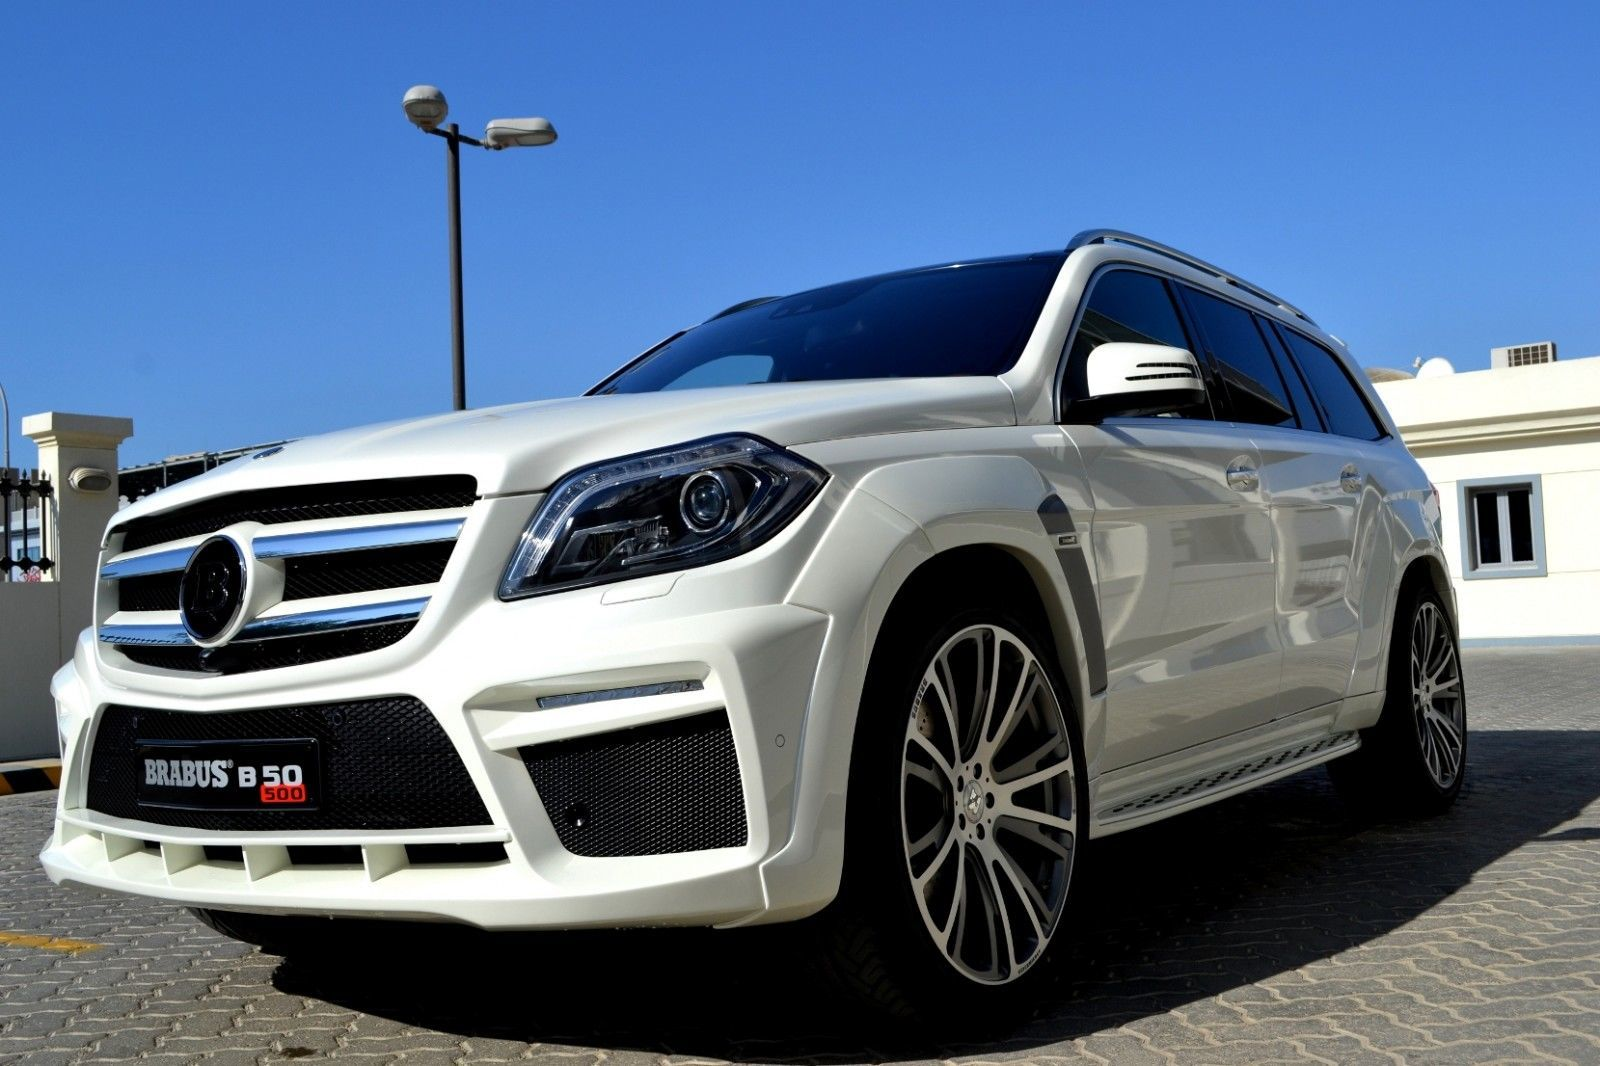 Brabus b63s 700 widestar upgrades for mercedes benz gl for Mercedes benz hollywood